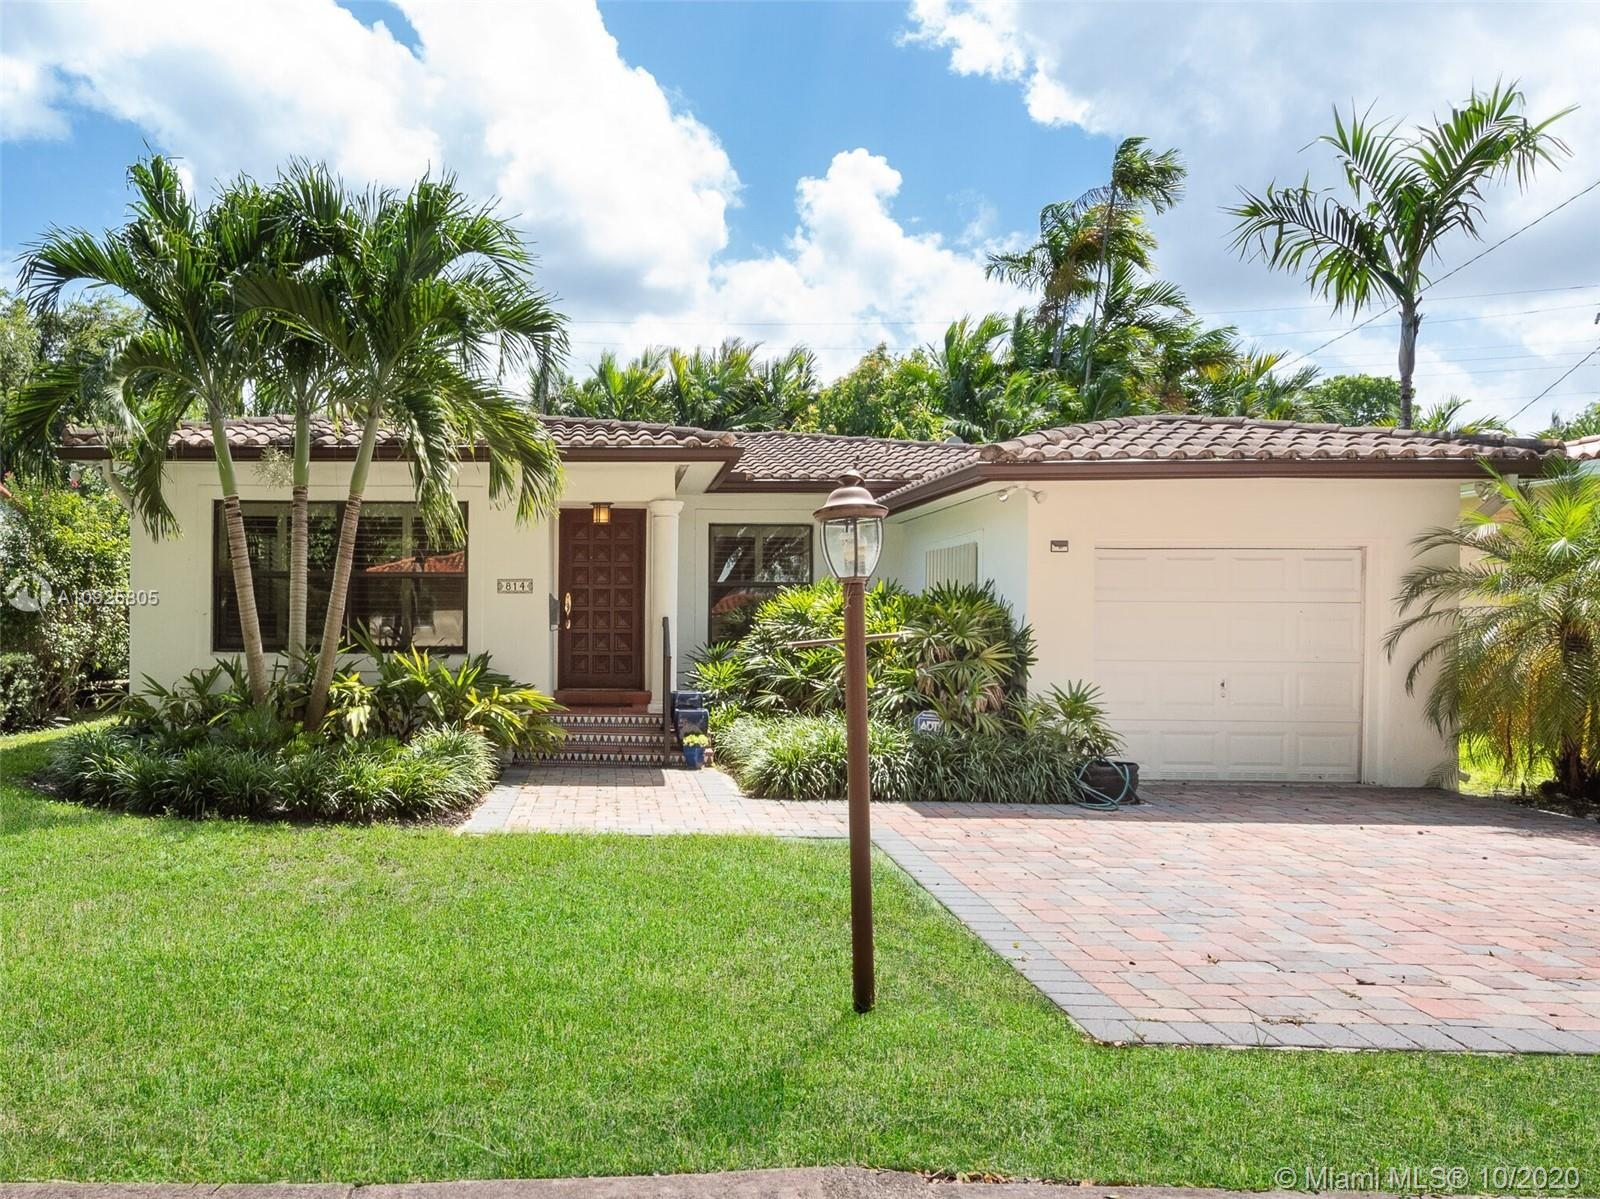 Details for 814 Mariana Ave, Coral Gables, FL 33134